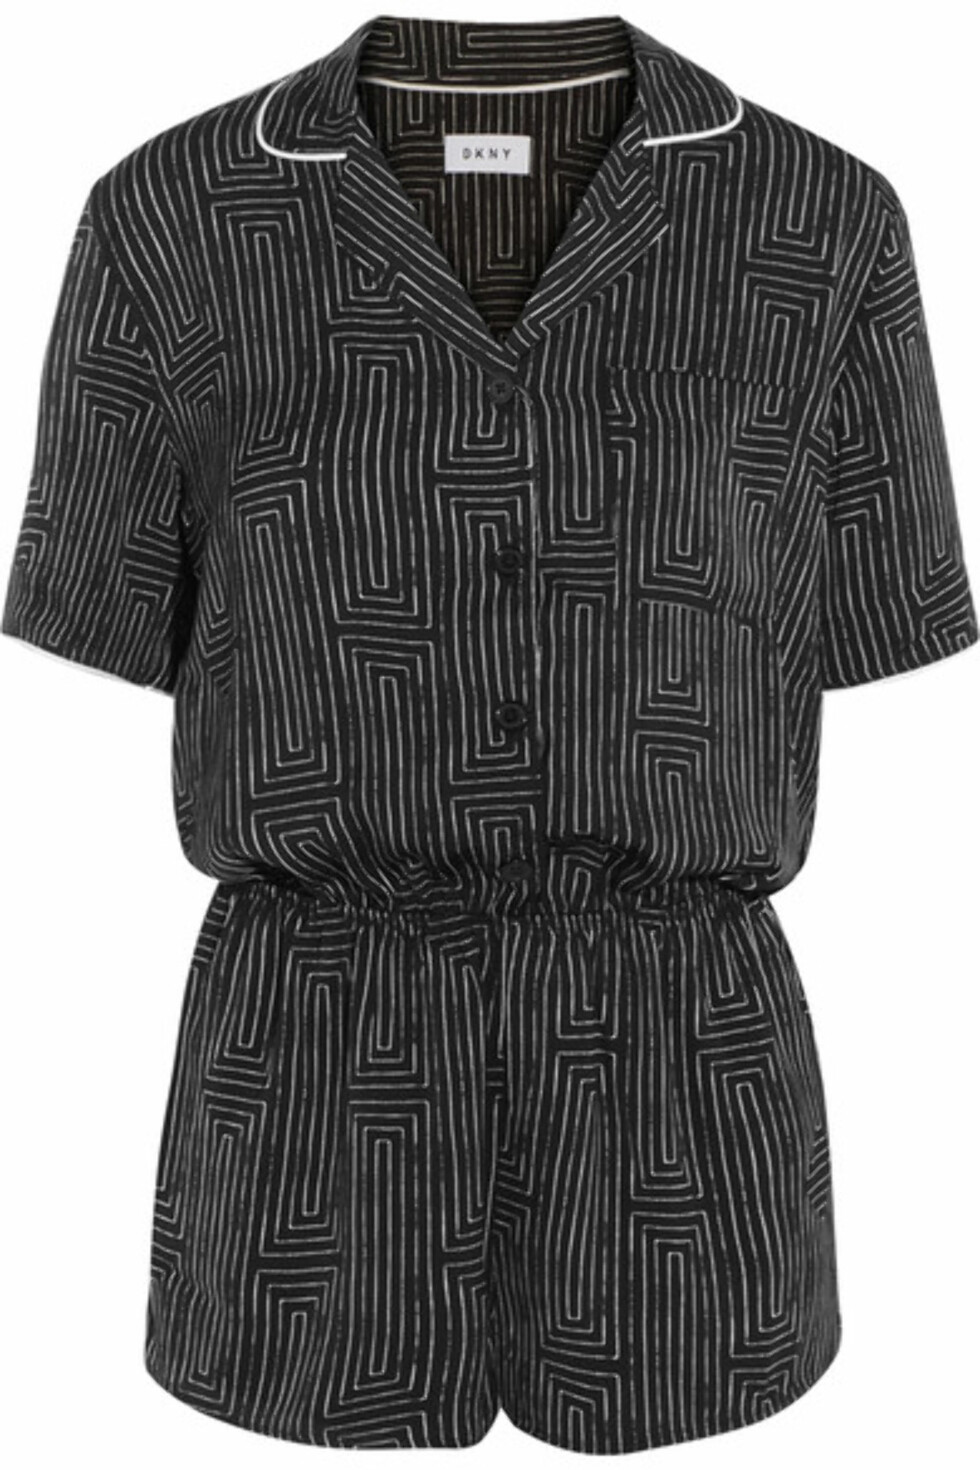 Pysj fra DKNY via Net-a-porter.com |500,-| https://www.net-a-porter.com/no/en/product/920993/DKNY/printed-washed-satin-playsuit